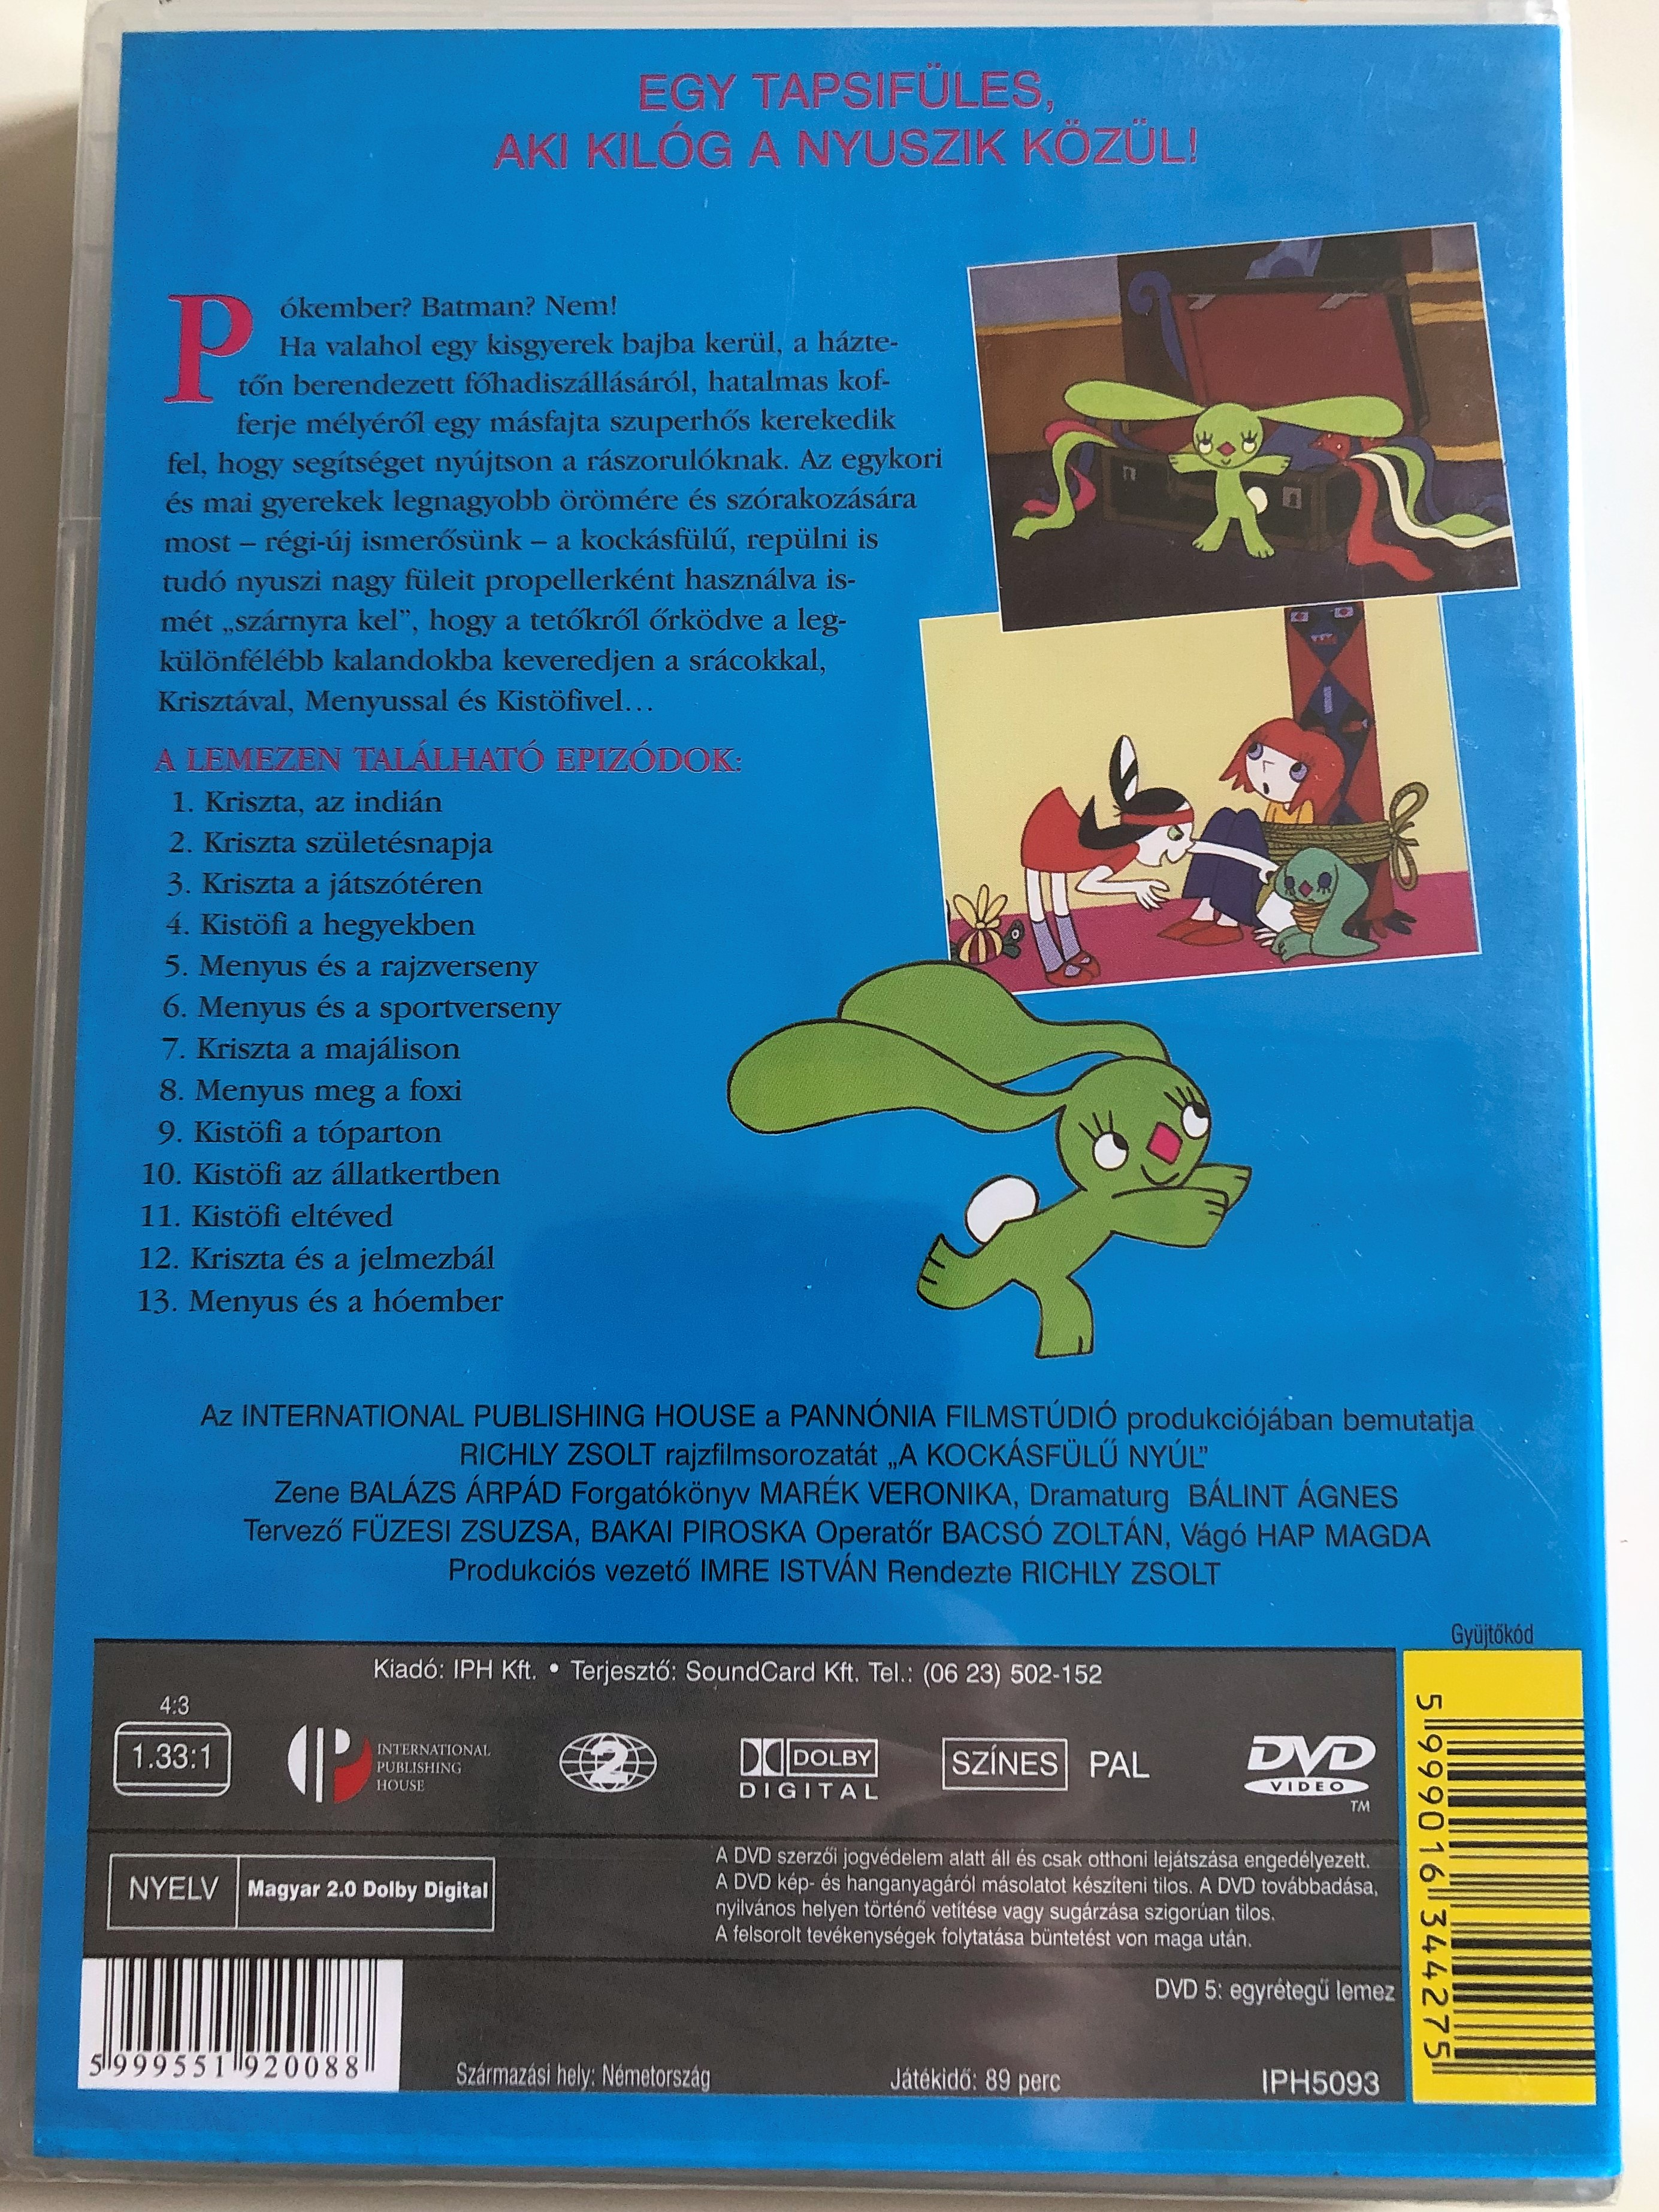 a-kock-sf-l-ny-l-1.-dvd-1978-the-rabbit-with-checkered-ears-1.-directed-by-richly-zsolt-hungarian-classic-cartoon-2-.jpg